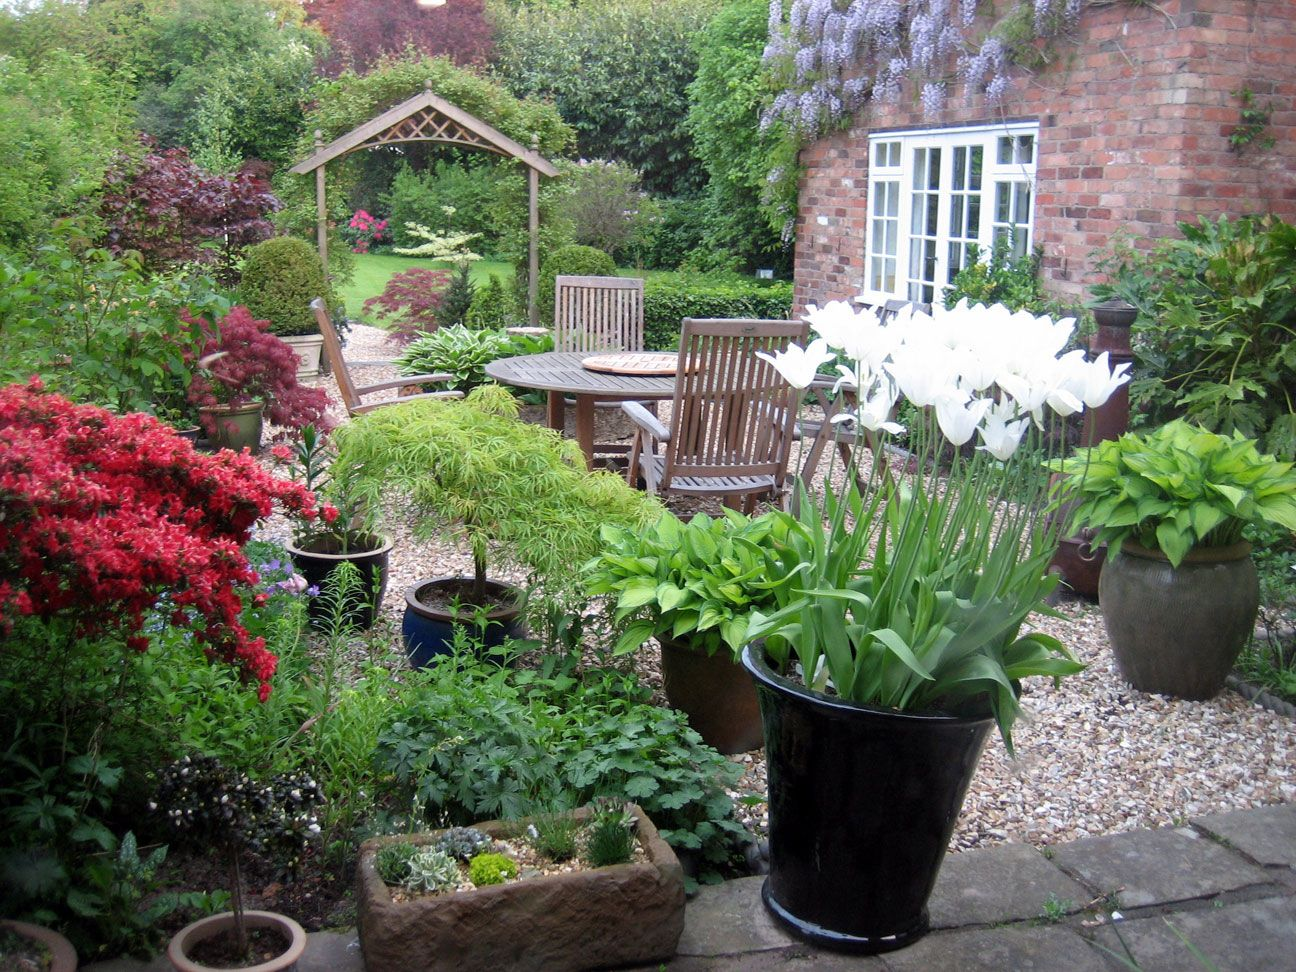 Small Courtyard | Traditional Courtyard Garden Design Style And Planting  Plans | Paul .